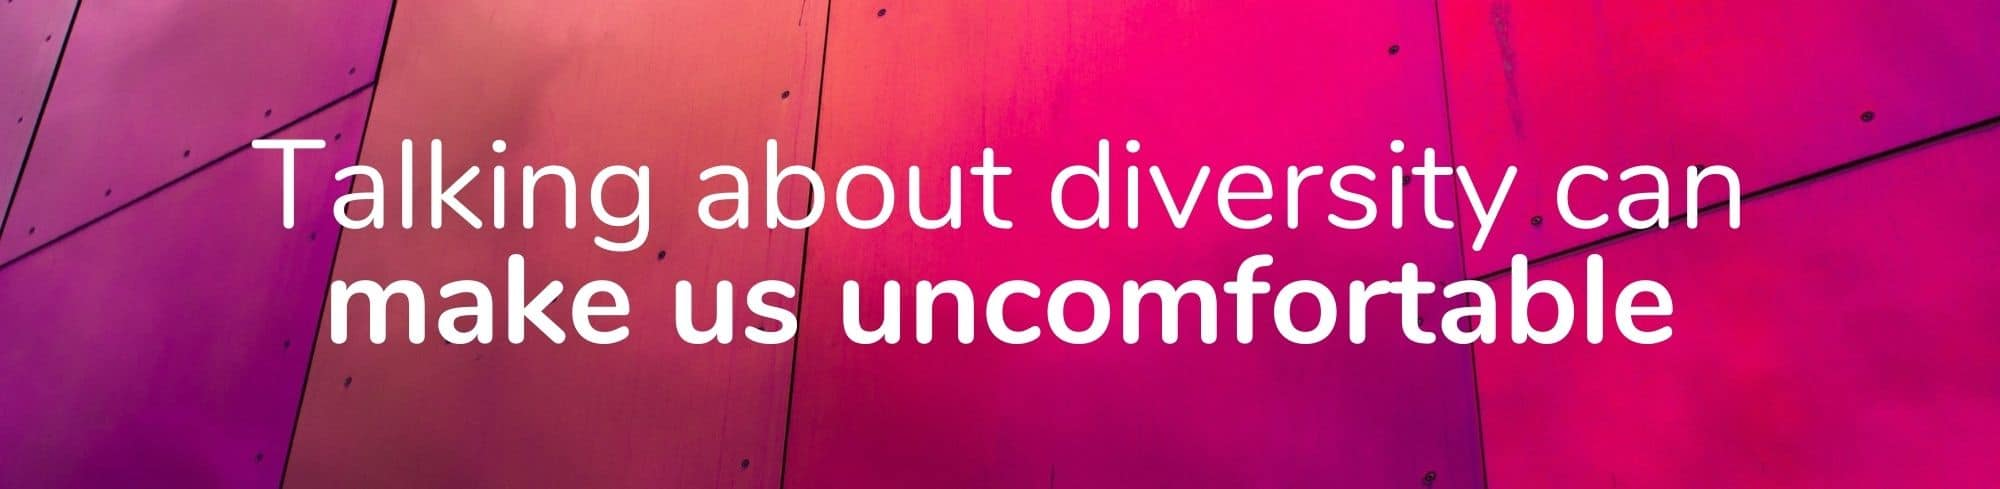 Talking about diversity can make us uncomfortable